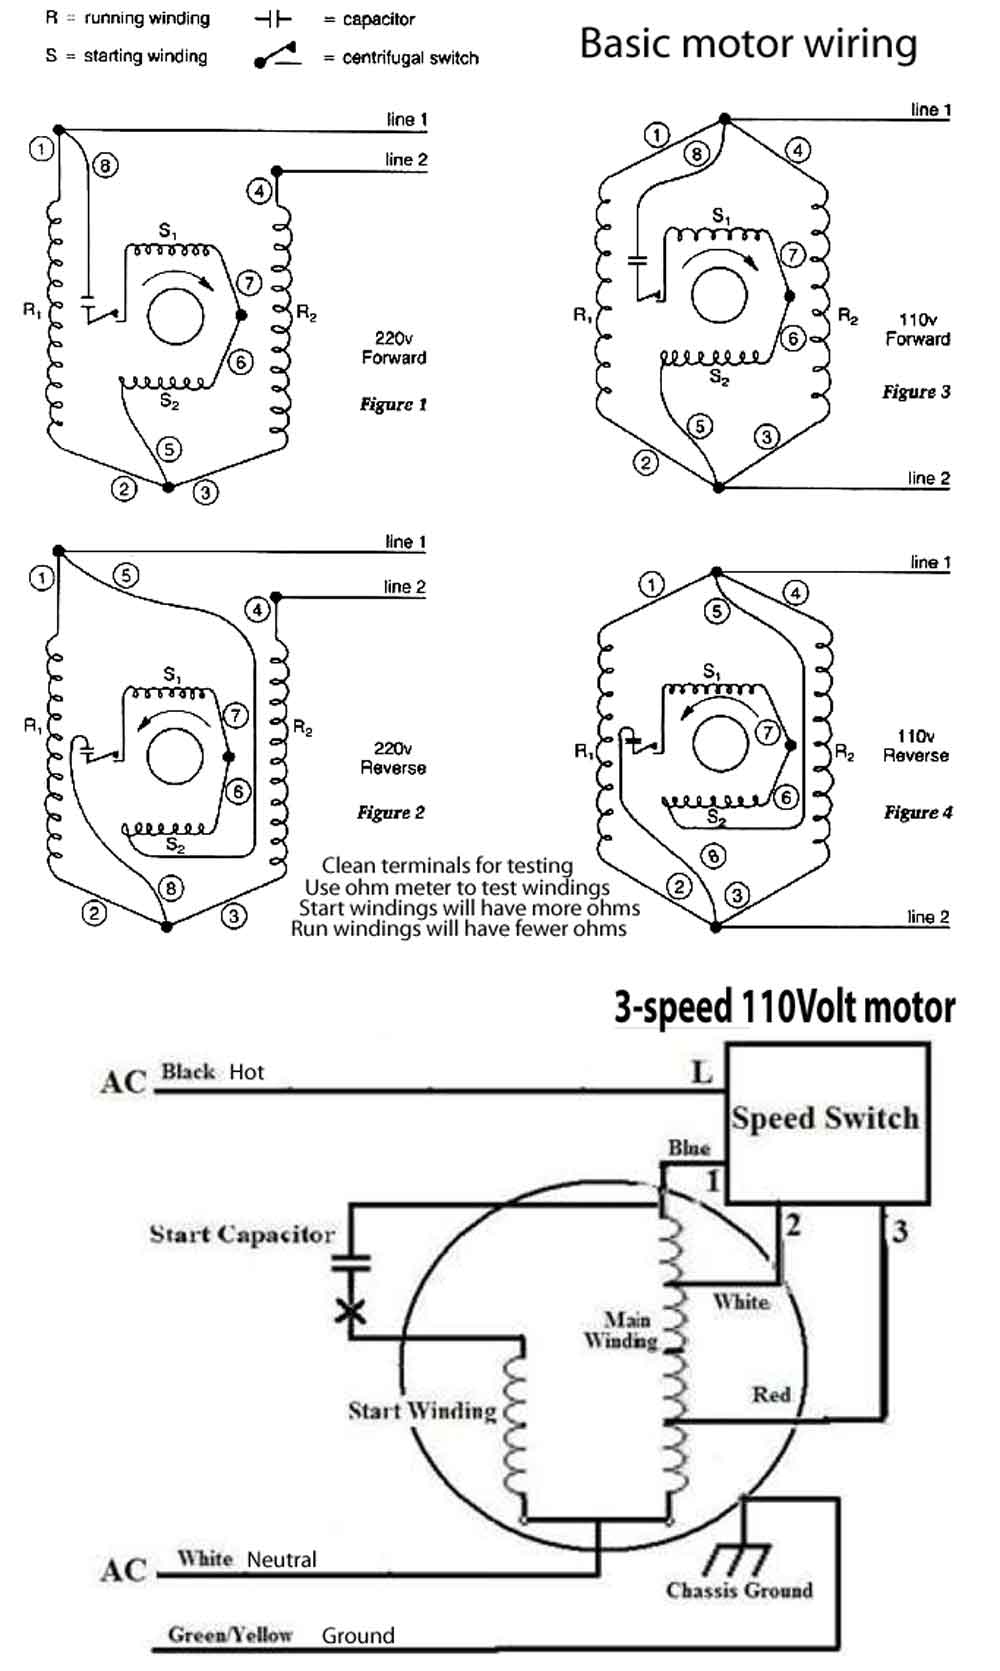 how to wire 3 speed fan switch Wiring- Diagram  Auto Wire Diagram Power Cord Wire Diagram Cm Chain Motor Wire Diagram